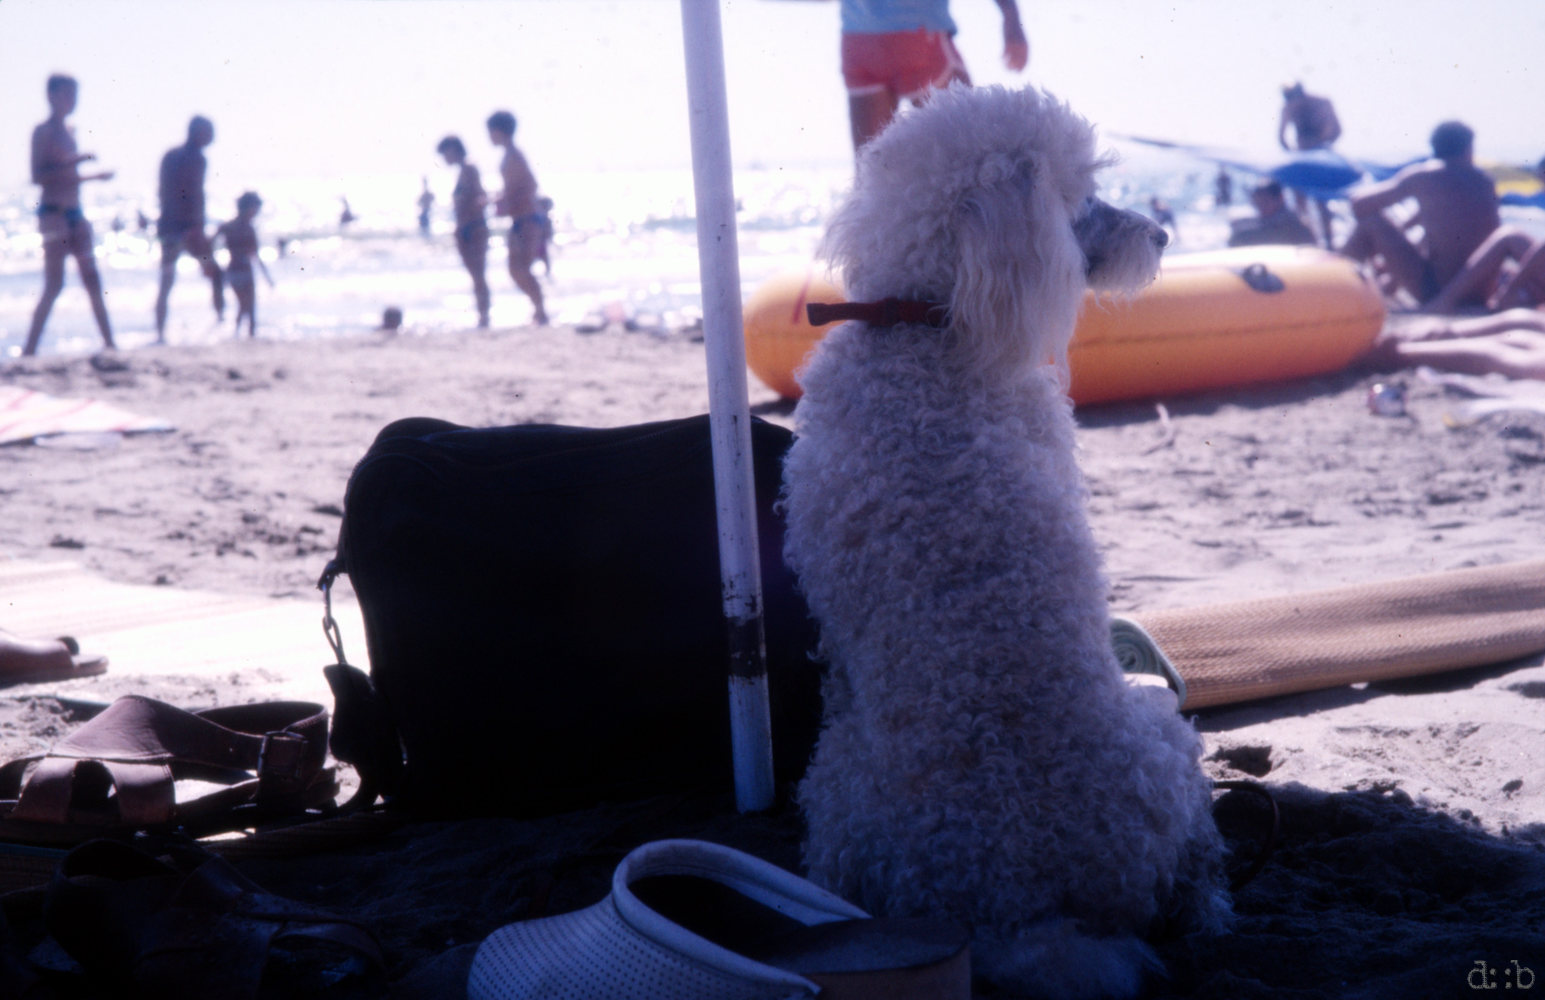 A poodle sitting under a sunscreen watching people on the beach.